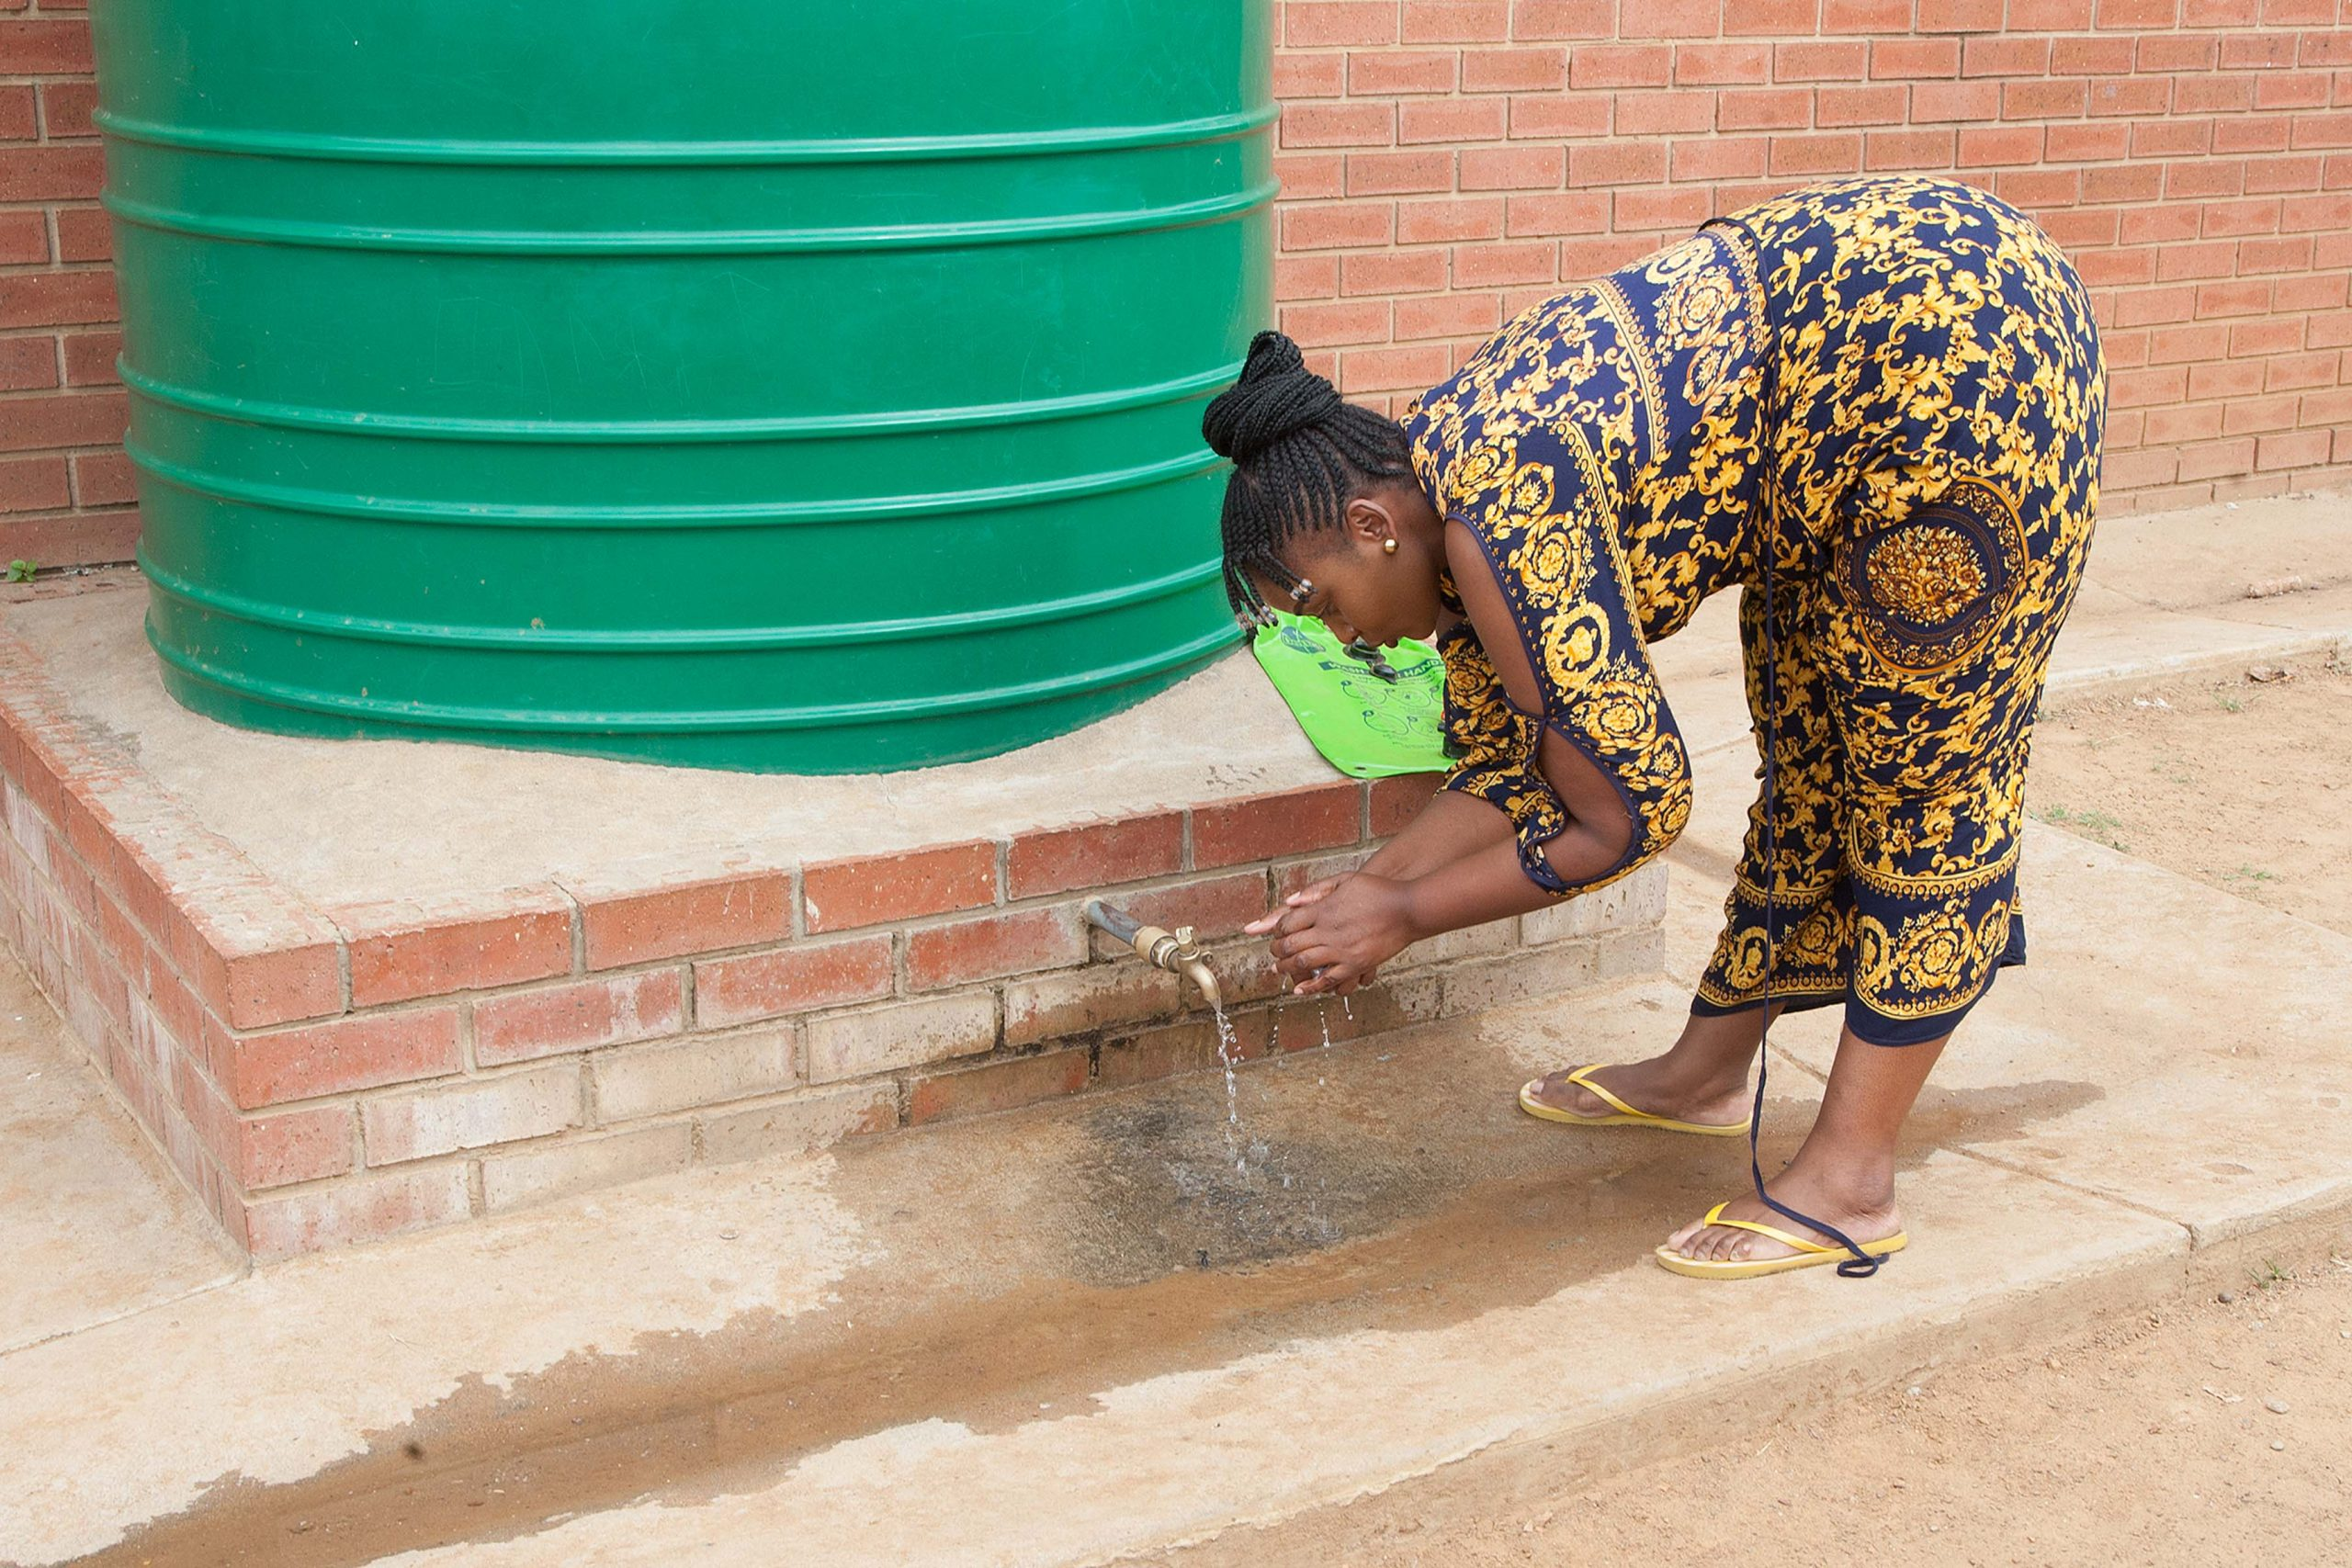 13 March 2020: Teacher Bongumusa Mdluli washes her hands at Khethelihle Primary School.